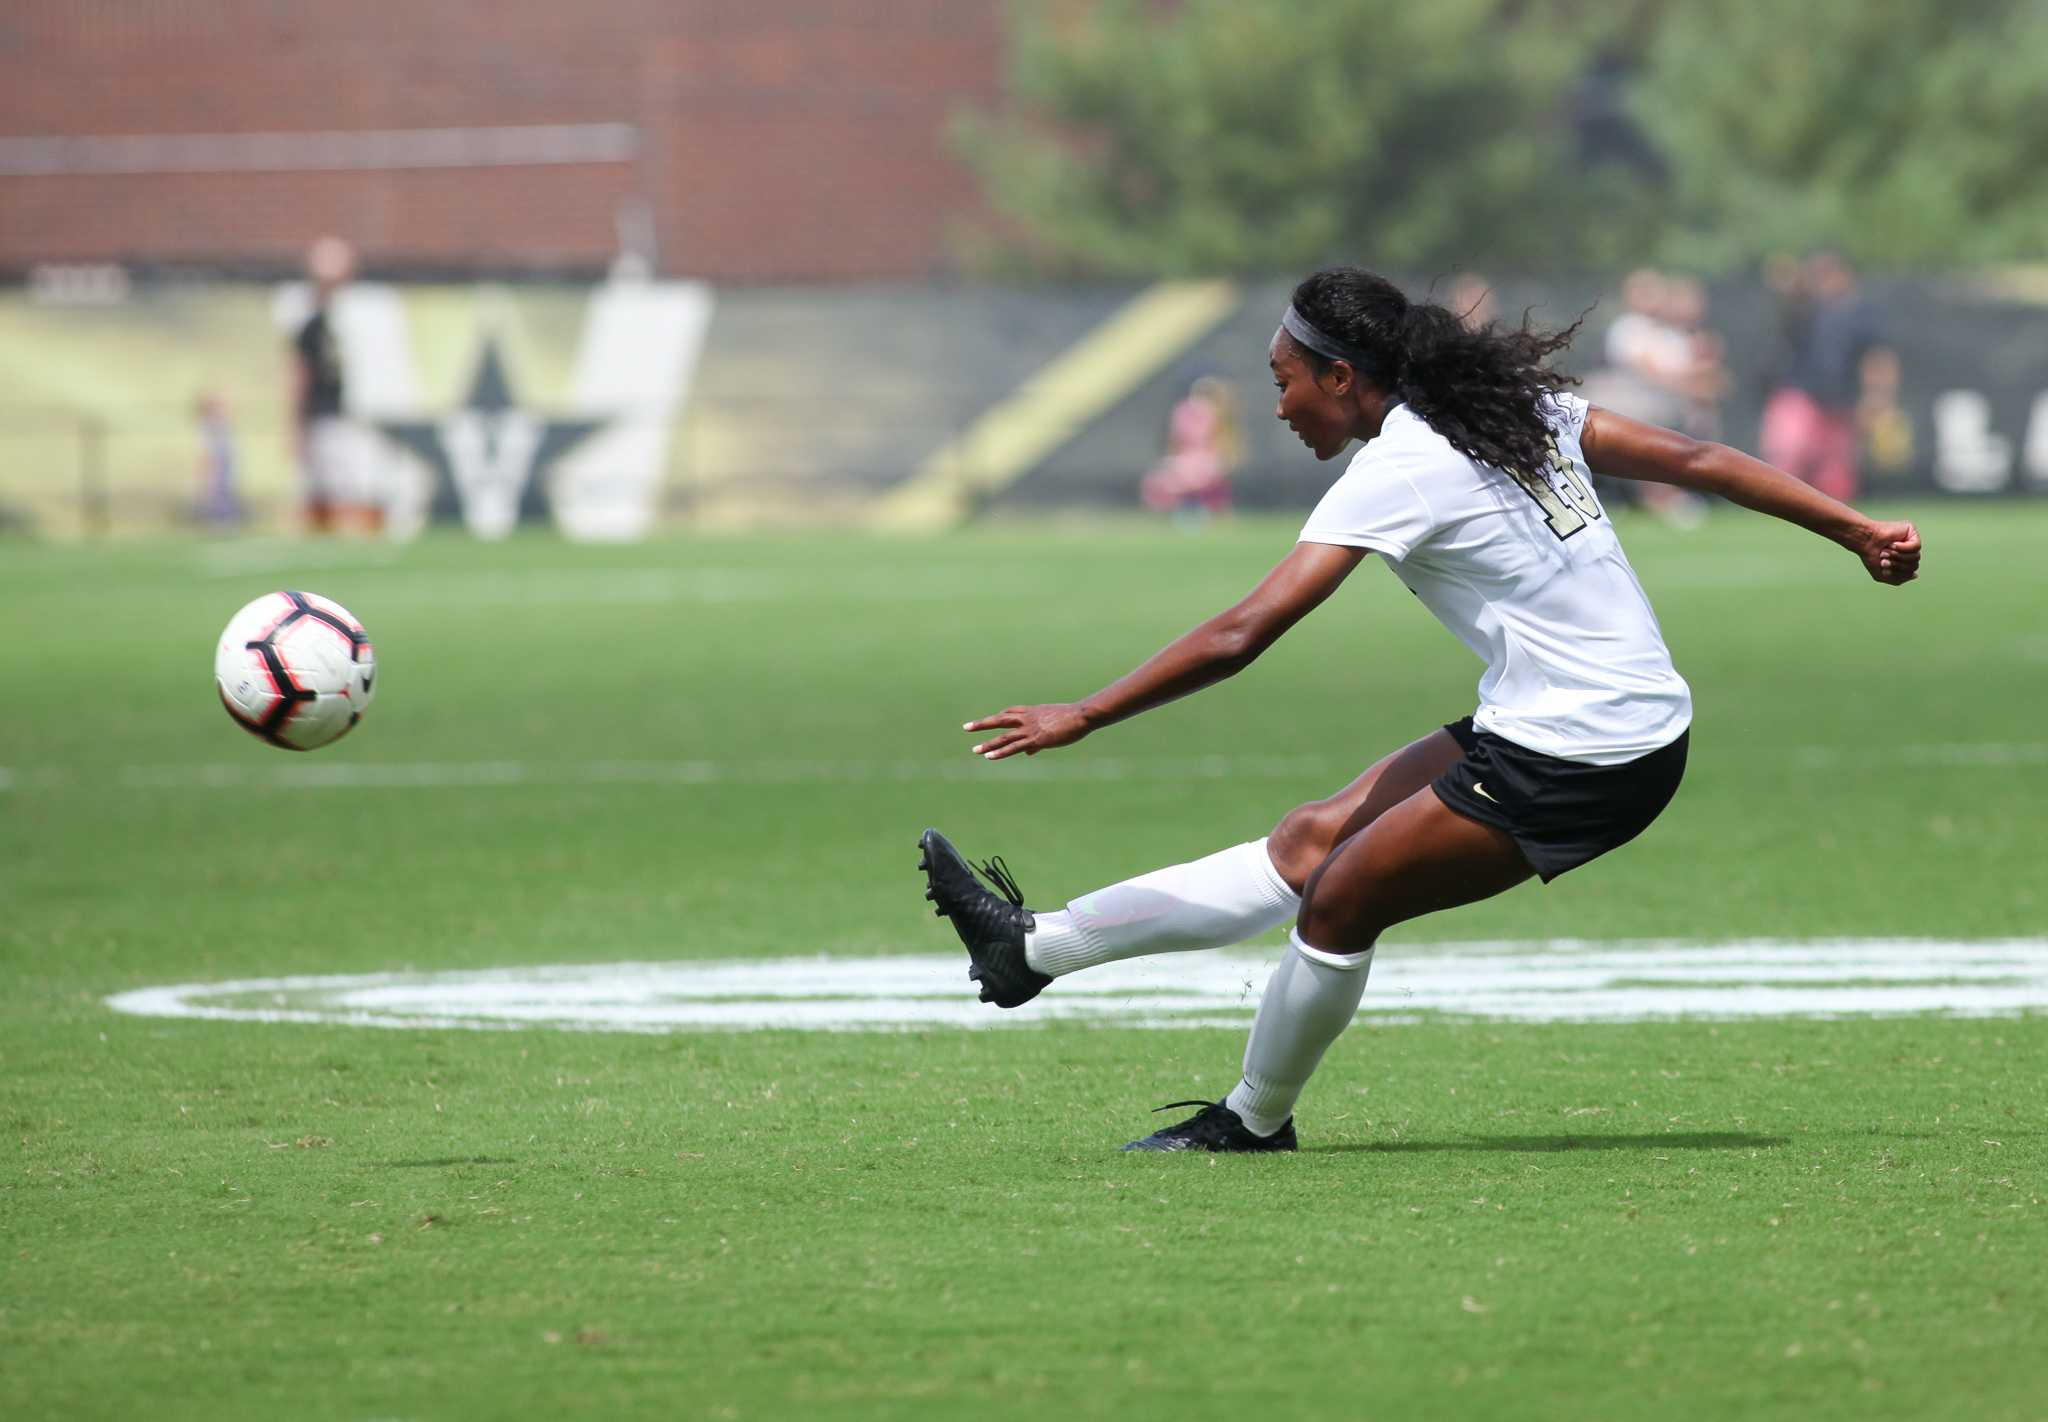 Vanderbilt Soccer rolling through non-conference play, seeking sixth-straight win